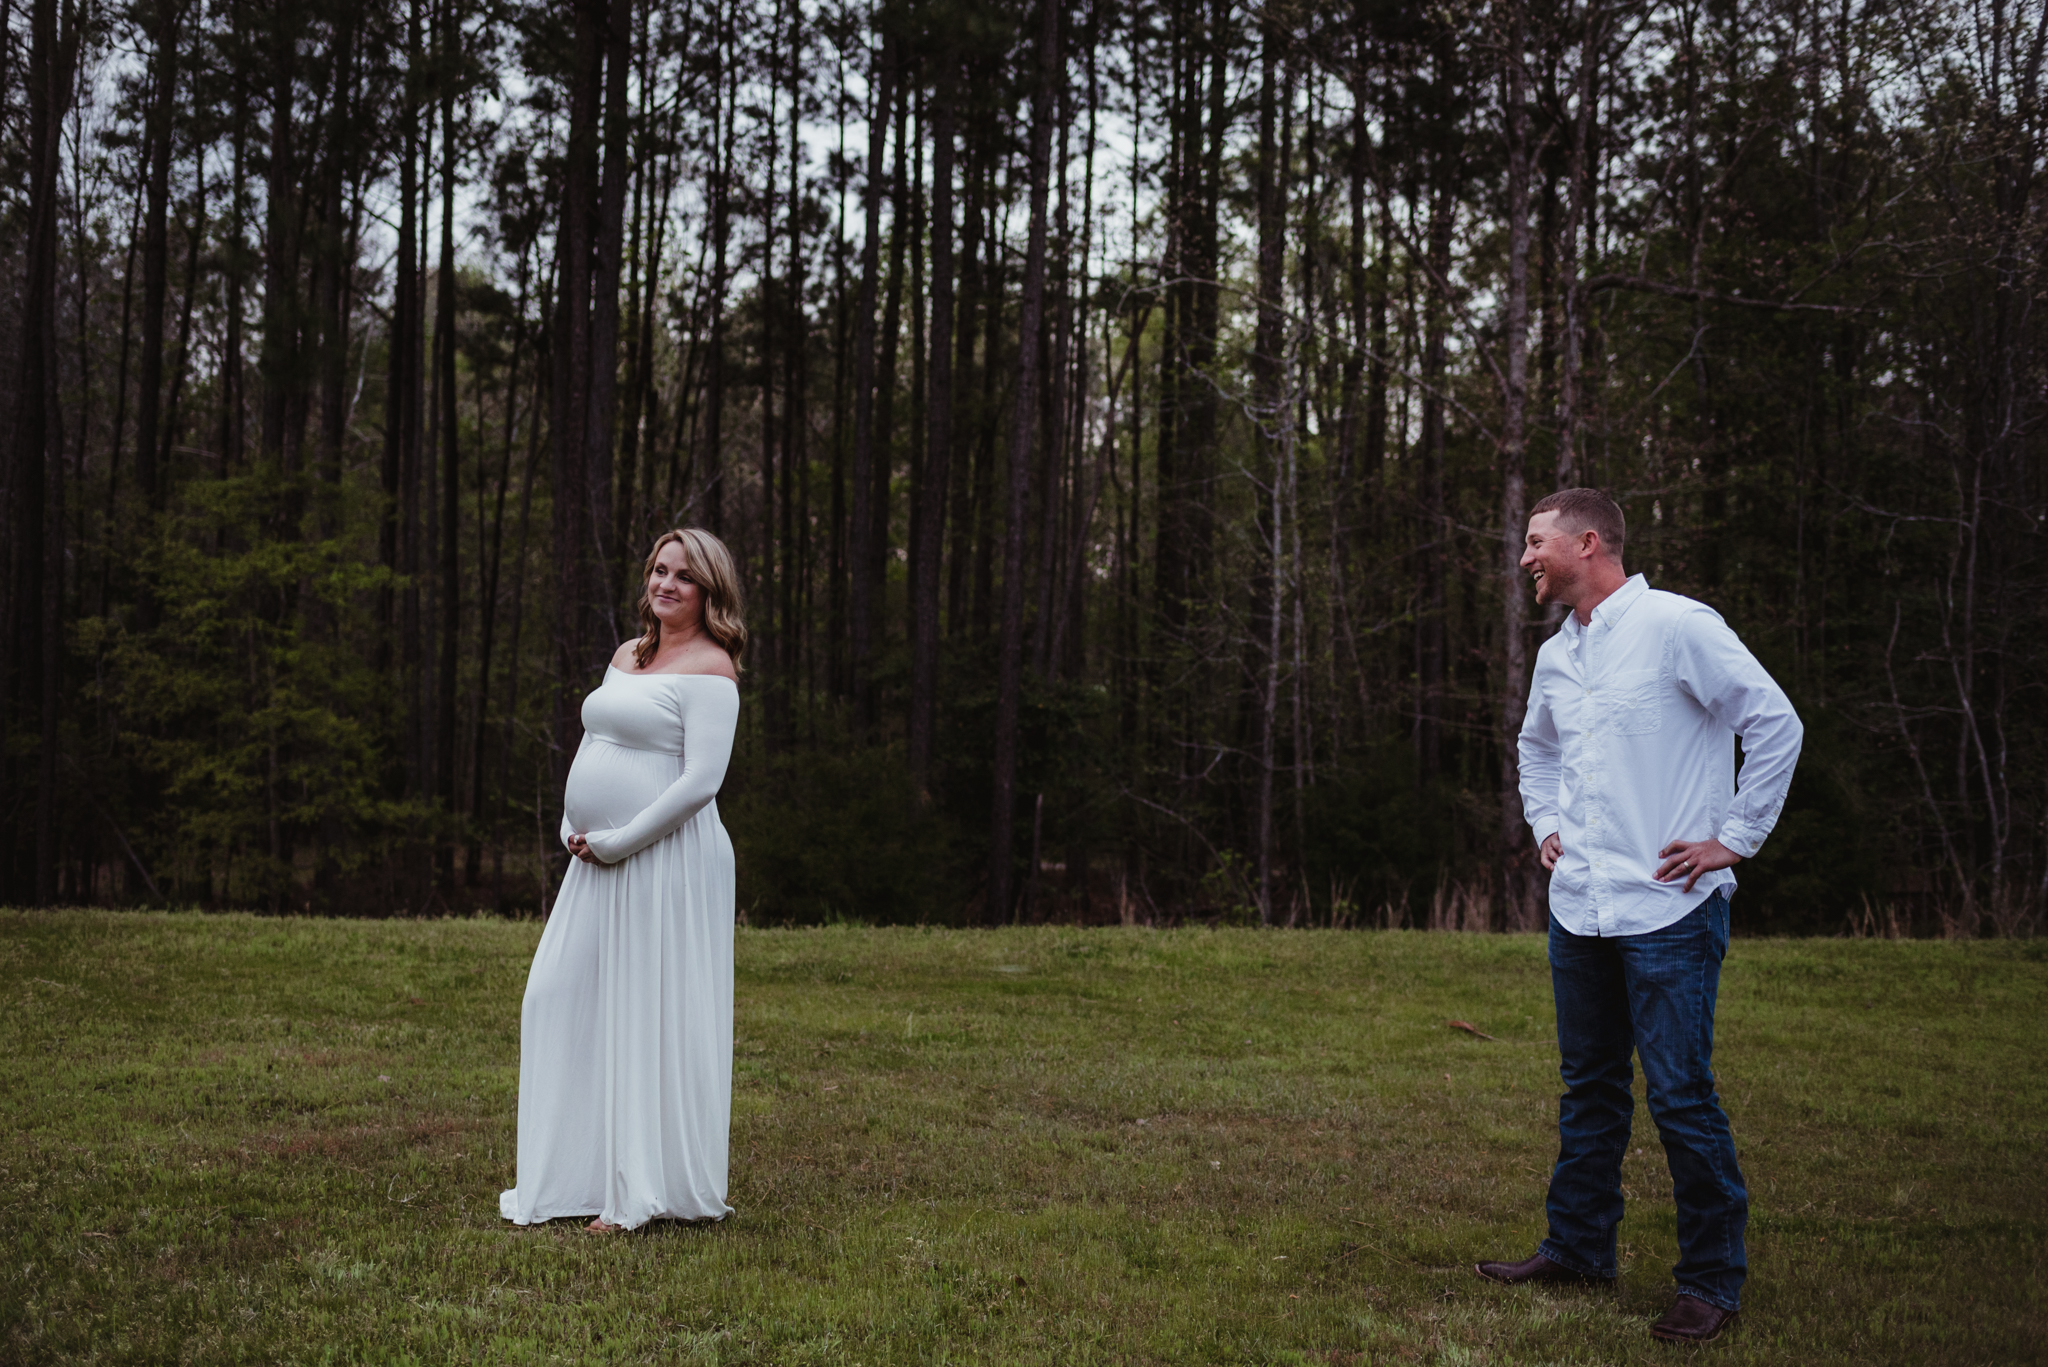 The soon to be parents tease each other during their maternity shoot with Rose Trail Images at Mill Bridge Nature Park in Rolesville, NC.